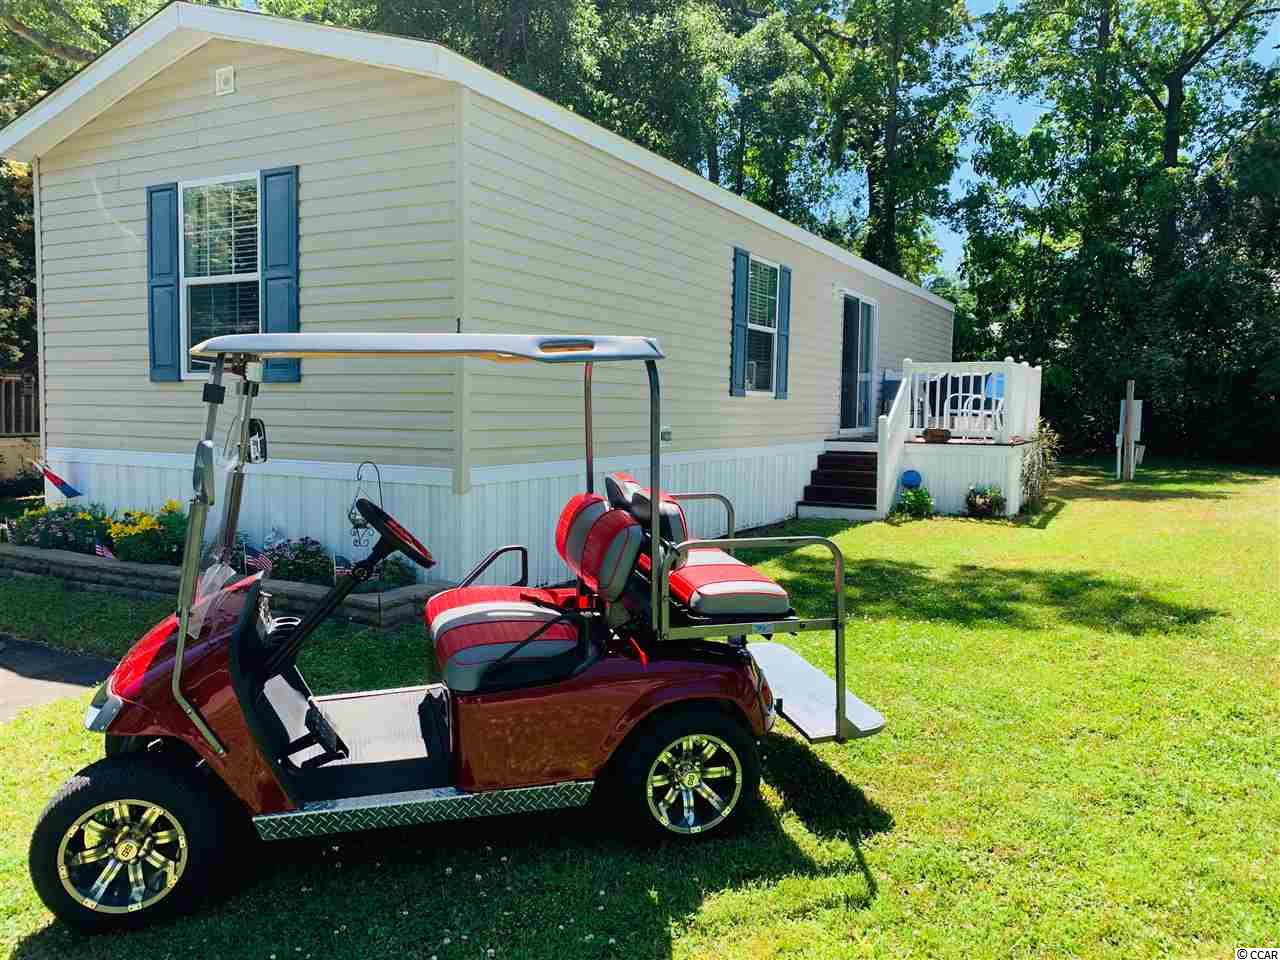 """(( GOLF CART INCLUDED )) This is a VALUE PACKED PROPERTY! Located in the heart of Garden City, and ONLY 1.6 MILES to the Atlantic Ocean, this home offers quick access to the beach by car, golf cart, or bike, and restaurants at your fingertips! Manufactured in 2015, this unit provides you with """"Worry Free Living"""" and minimal maintenance. ALL KITCHEN APPLIANCES, WASHER/DRYER, OUTSIDE STORAGE SHED/WORKSHOP, AND ALL FURNITURE INCLUDED - ((EXCEPT)), the 2 bedroom suits, TV and TV stand, the 2 lamps in living room, white chest cabinet in kitchen, and the planters beside sliding glass door. All other Furniture, Kitchen appliances, and washer/dryer convey. Storage Shed/Workshop and Golf Cart Shed also convey! New owner must complete and qualify for lot lease agreement. No rentals allowed in Windjammer. All measurements are approximate and not guaranteed. Buyer responsible for verification.  Looking to live close to the beach without the cost? This may be the right fit for you! Lock in a showing today!"""